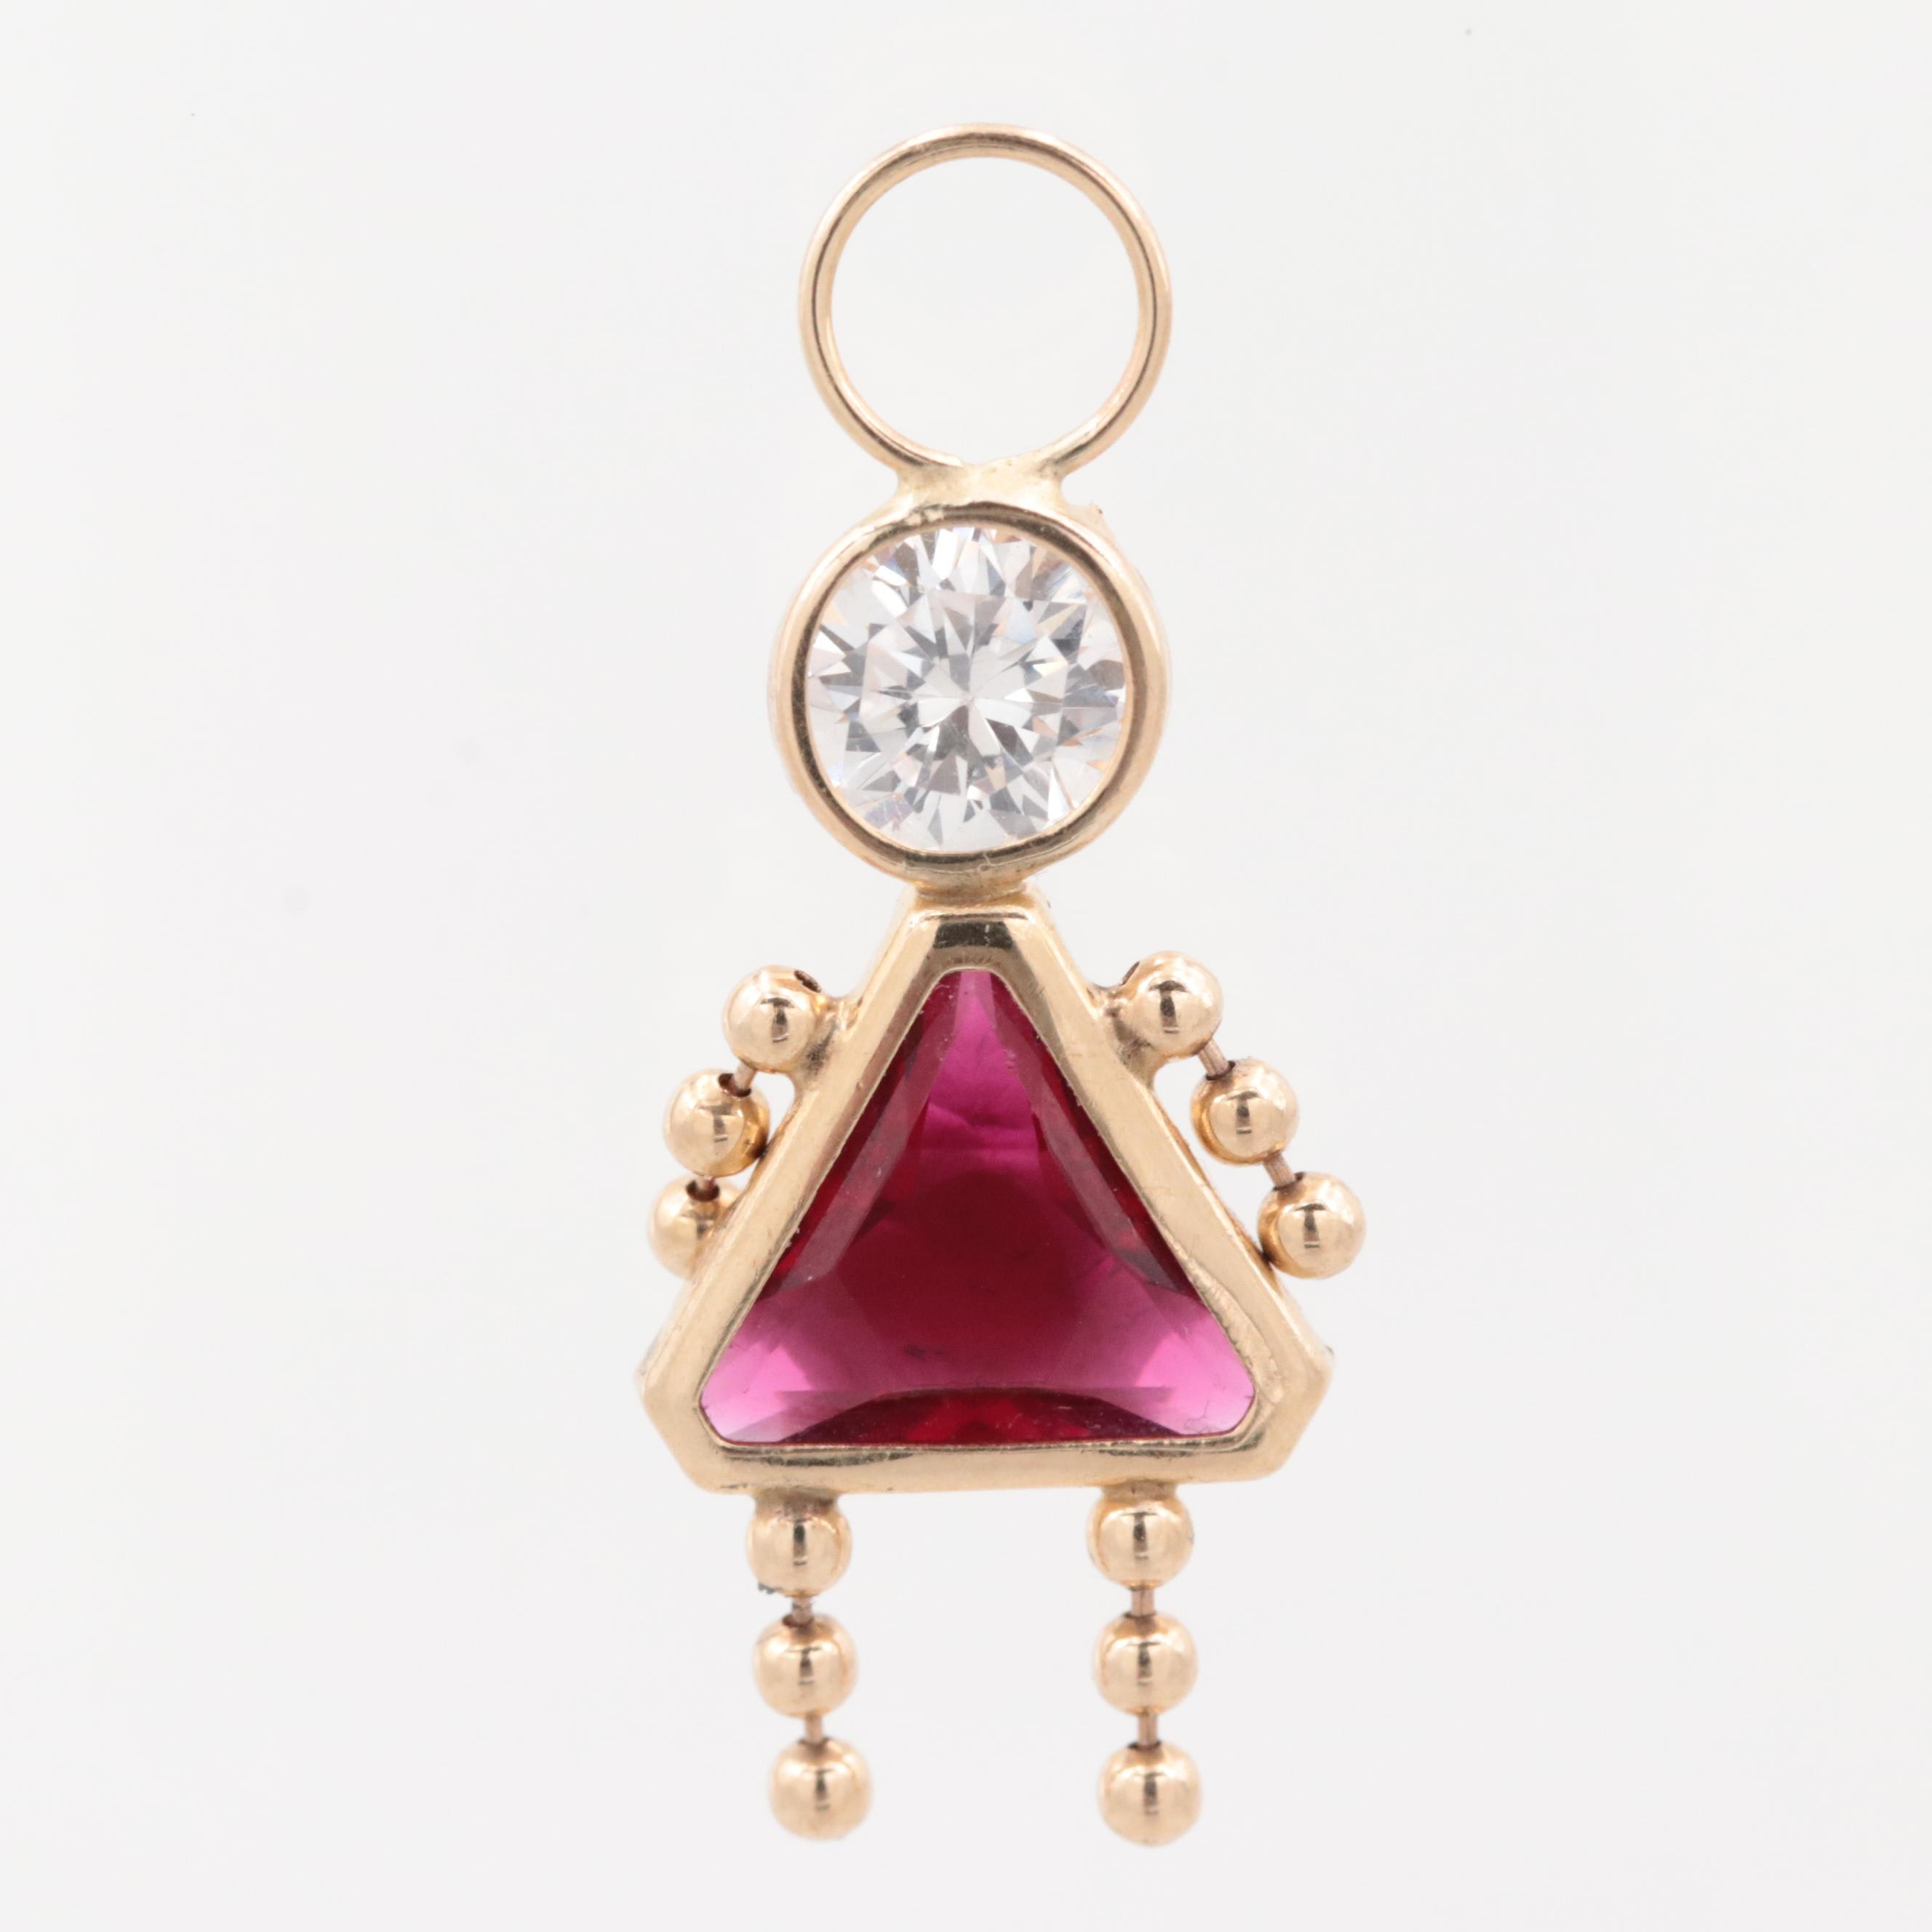 14K Yellow Gold Cubic Zirconia and Glass Figural Pendant